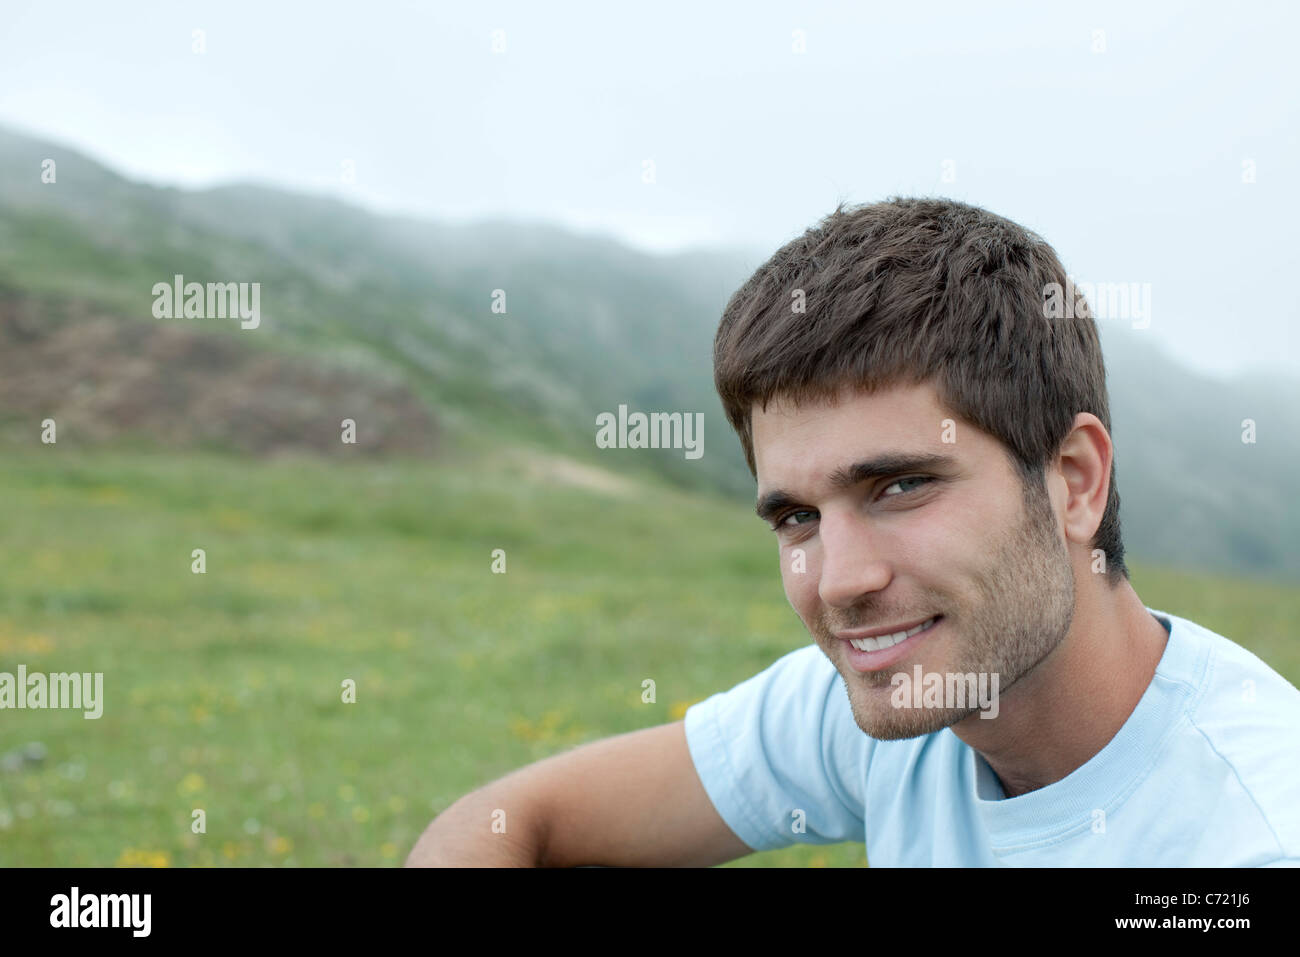 Man in nature, mountains in background, portrait - Stock Image